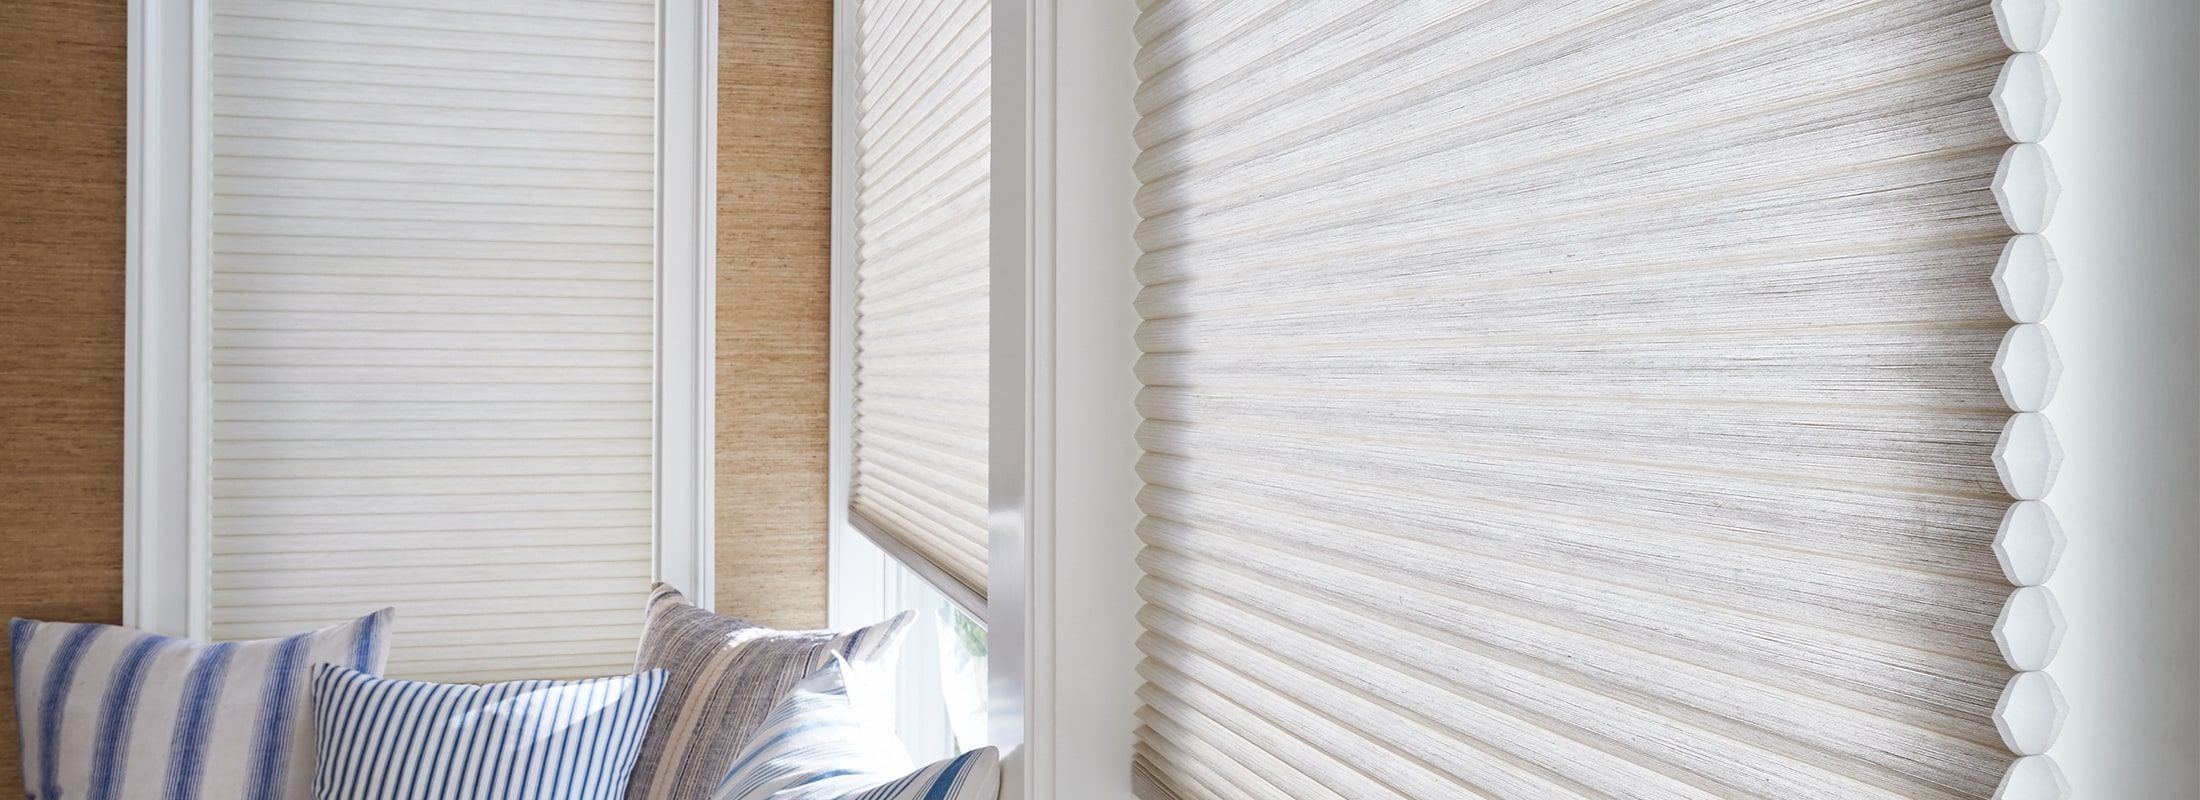 Custom Blinds Repair Services for Homes or Businesses Near Westlake Village & Thousand Oaks, California (CA)